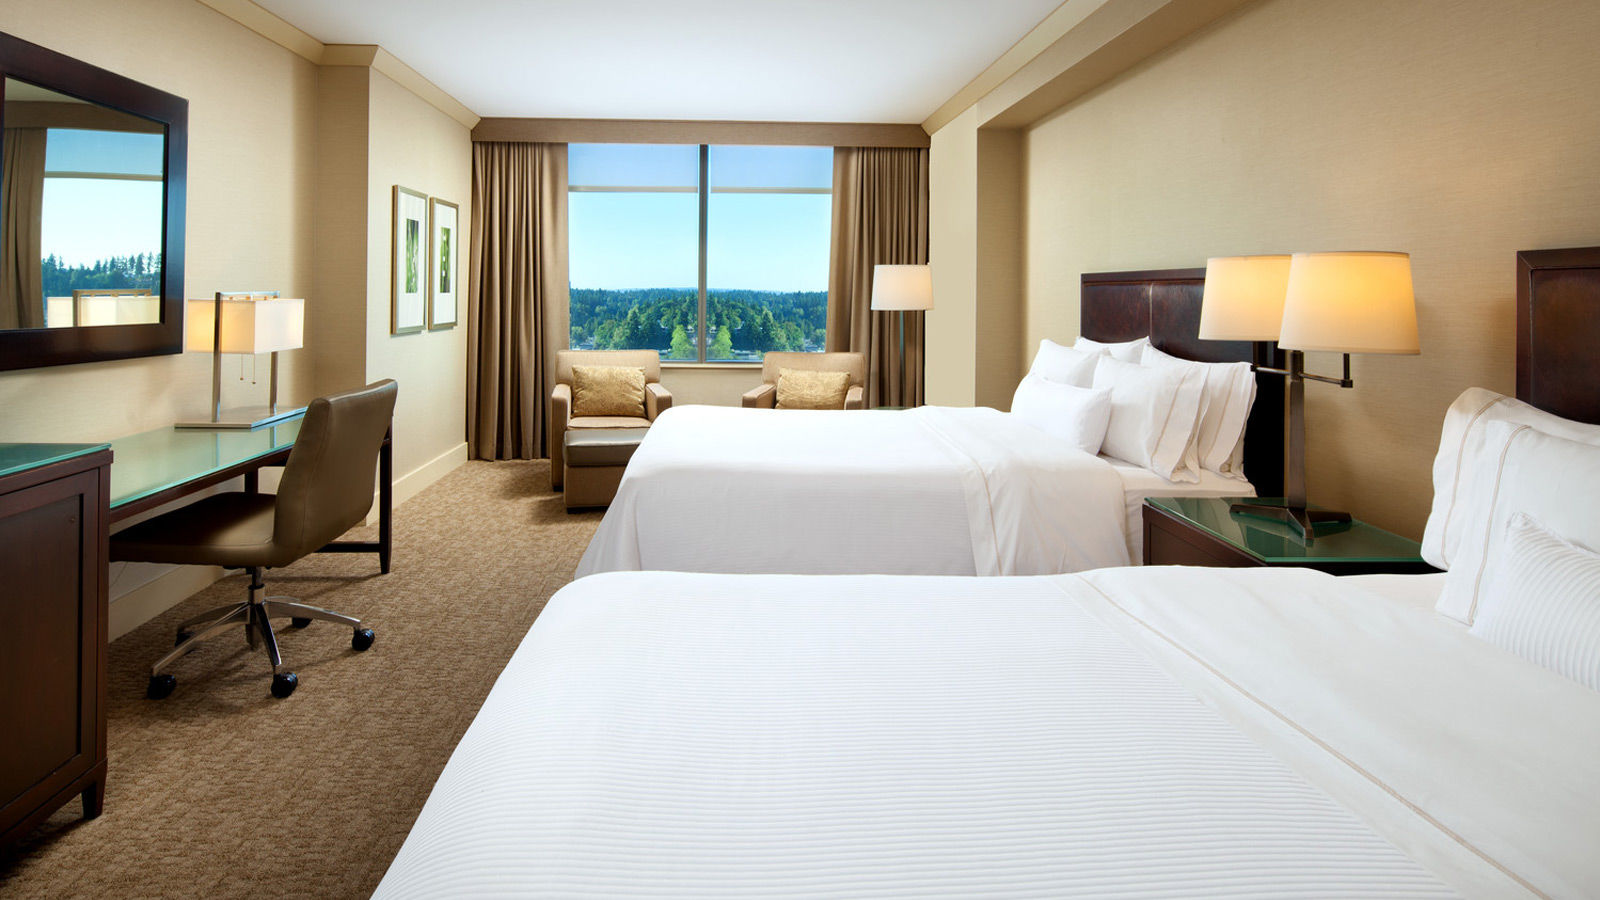 A newly renovated Deluxe Room at The Westin Bellevue